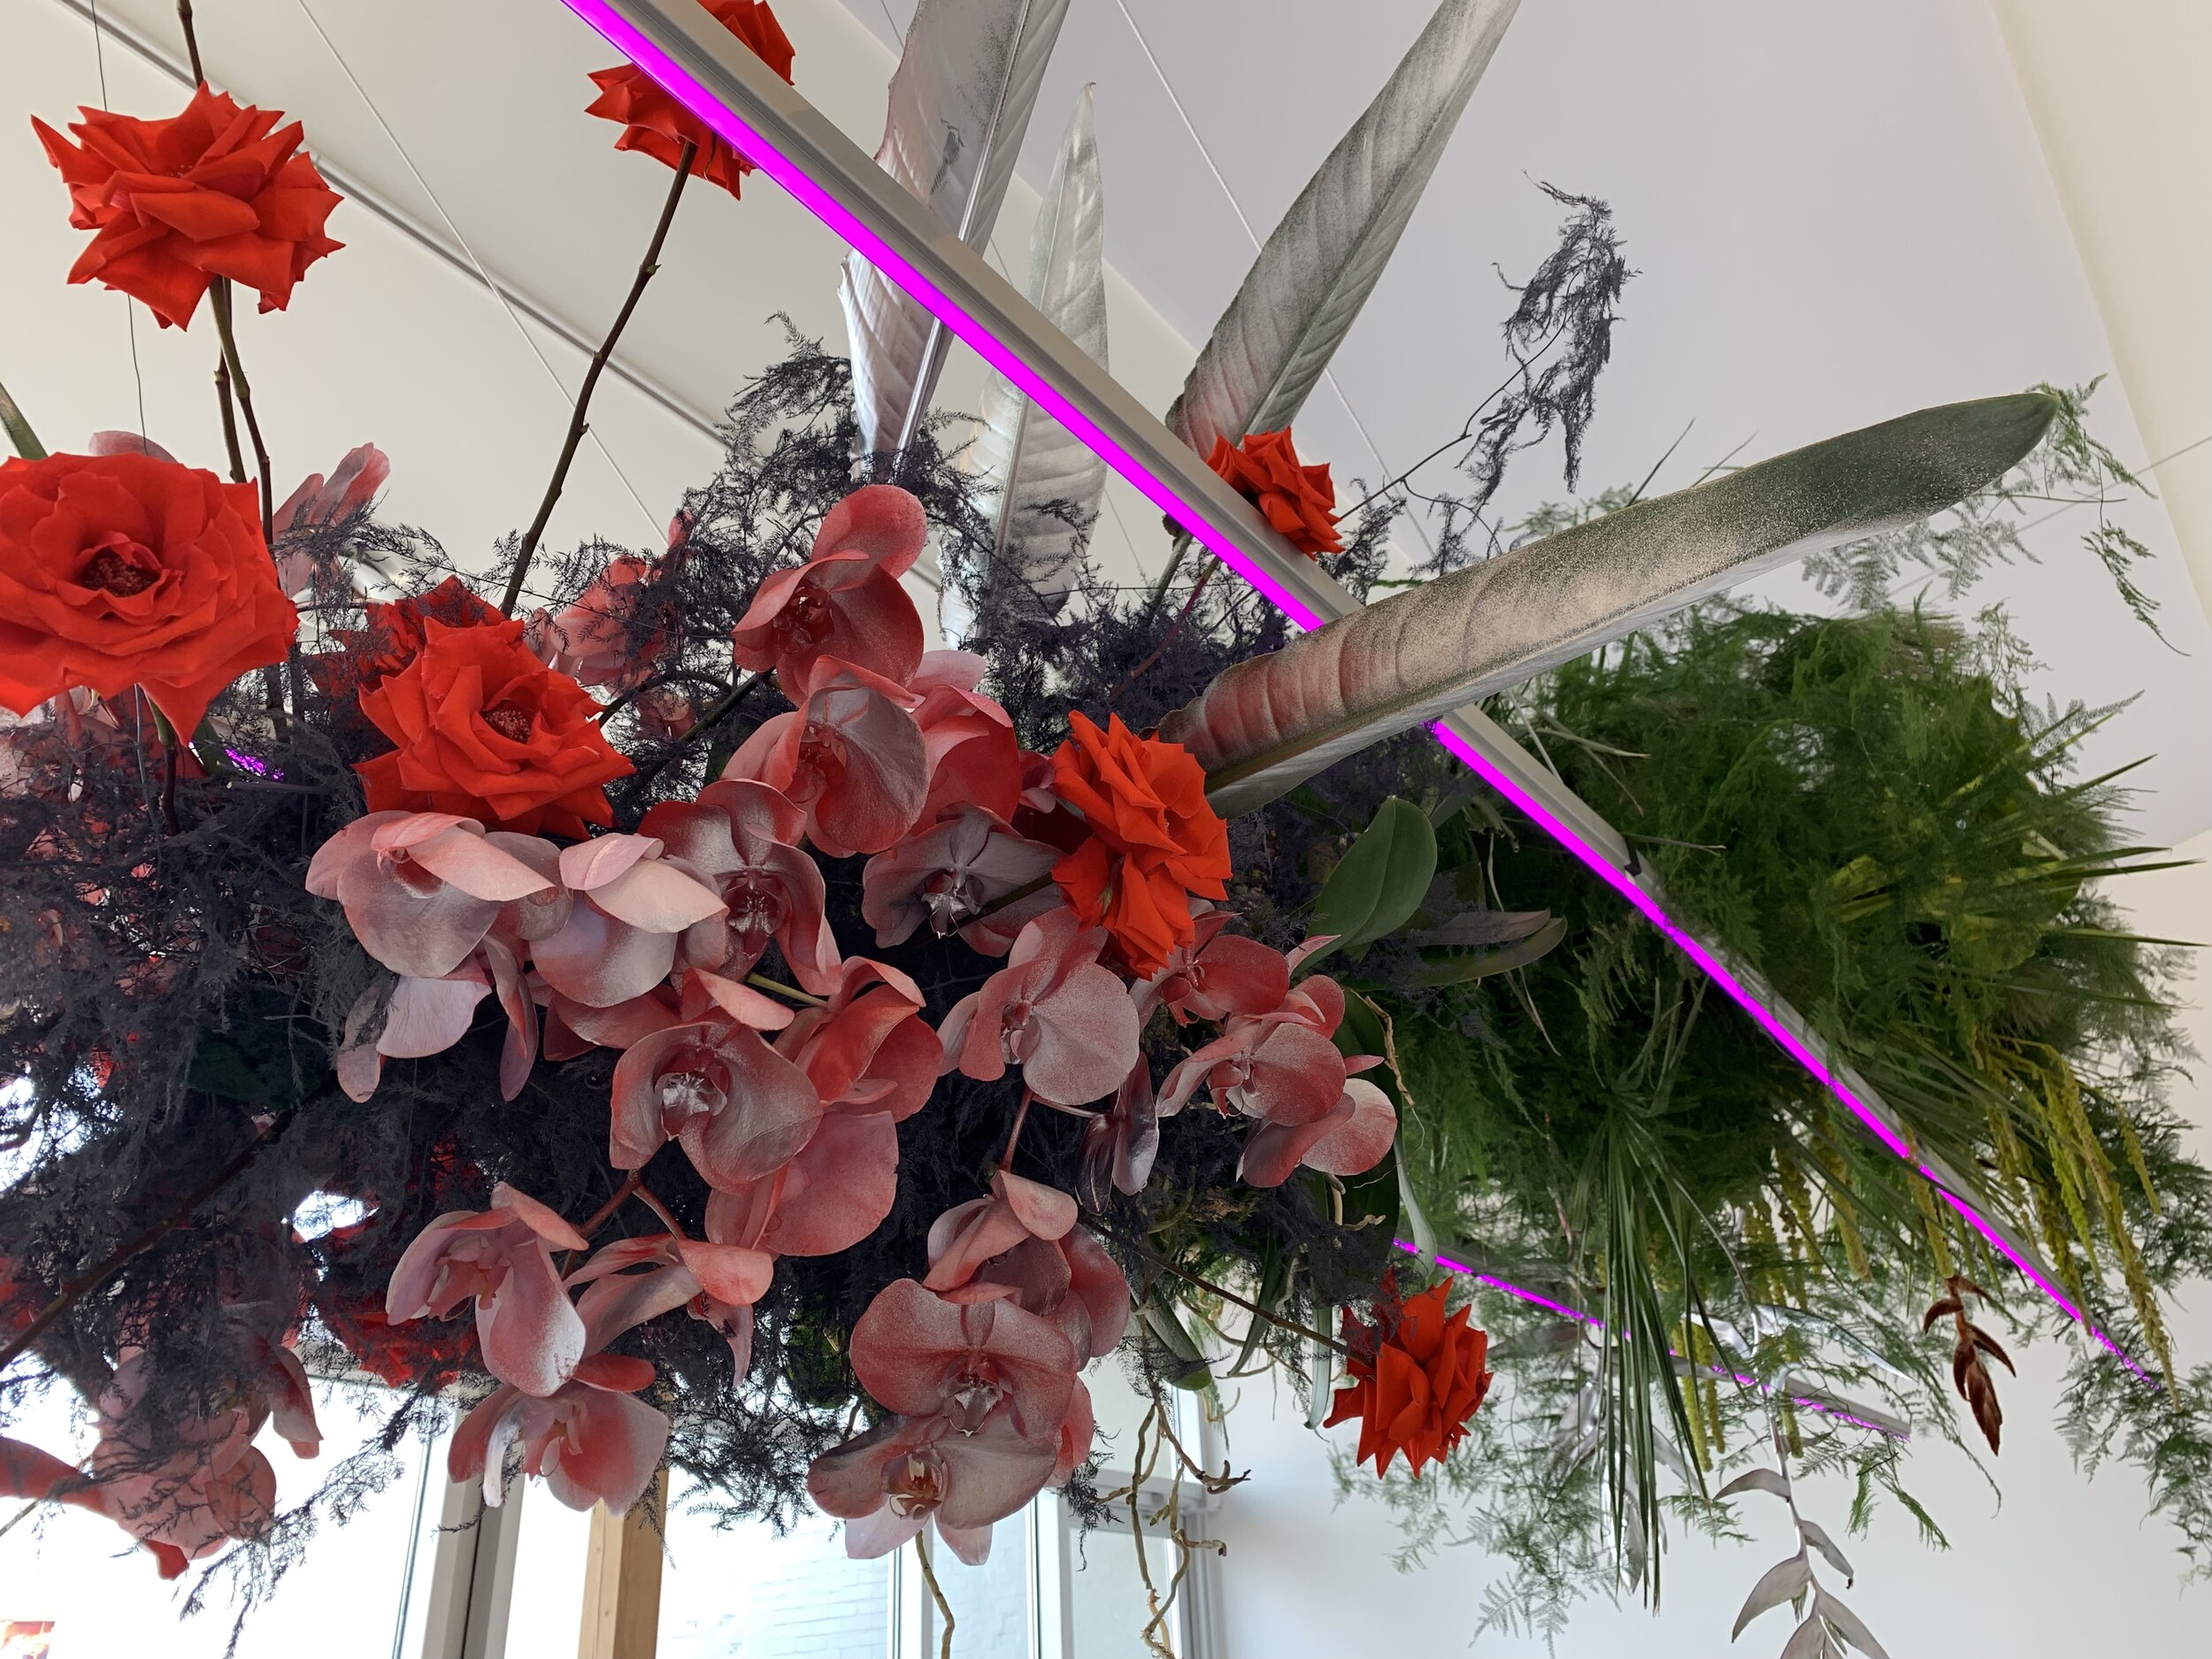 """Dinner in a Grow Room. - CONCEPT: to reimagine the cannabis plant from a """"higher"""" perspective (!!)using materials commonly found in grow FACILITIES, we created a reflective room with rows of custom designed pink led lights interacting with a SUSPENDED floral installation."""